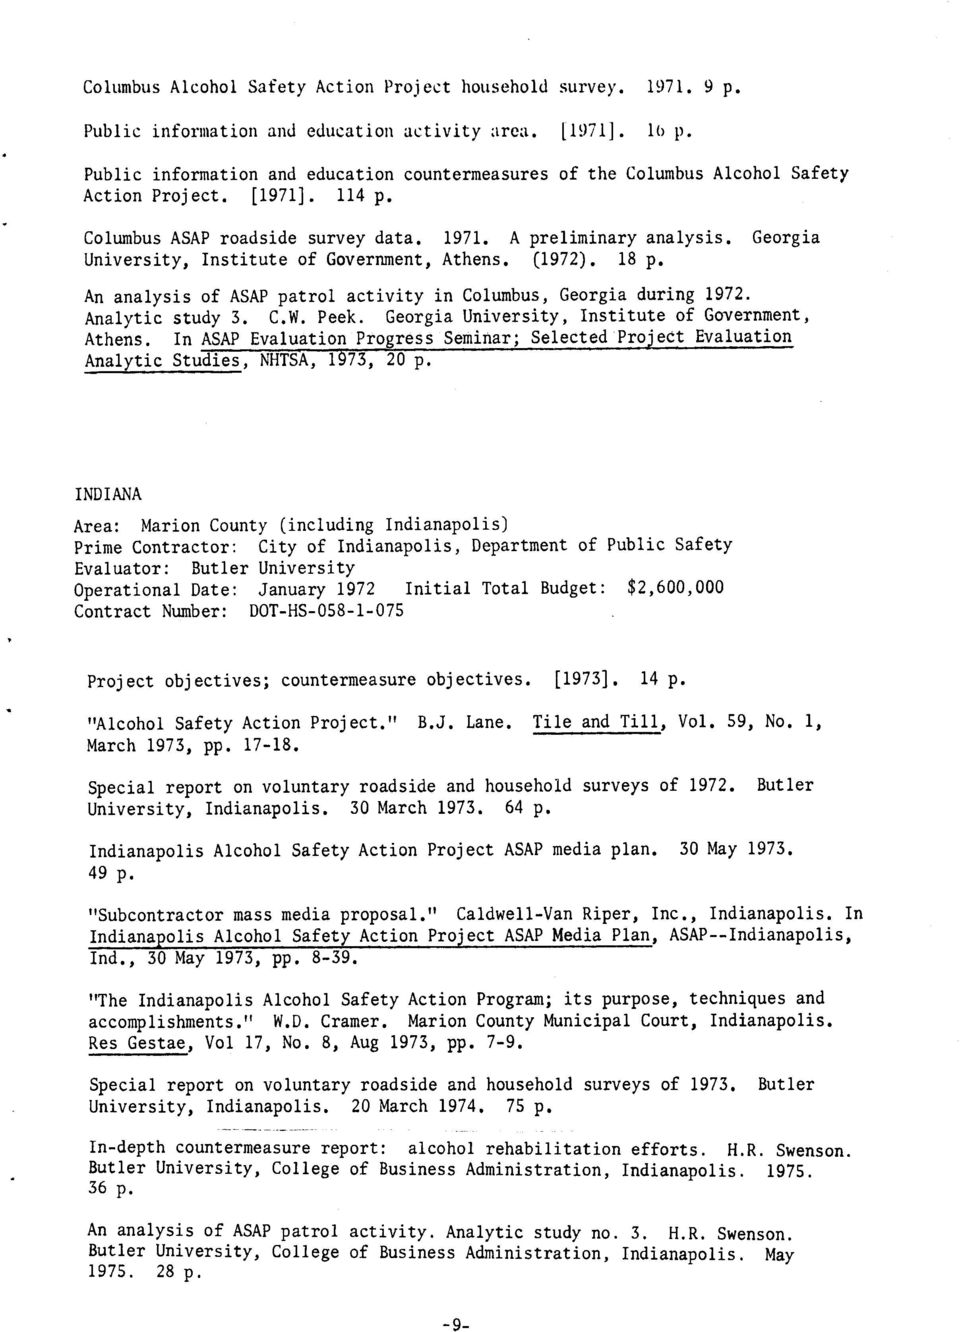 Georgia University, Institute of Government, Athens. (1972). 18 p. An analysis of ASAP patrol activity in Columbus, Georgia during 1972. Analytic study 3. C,W. Peek.